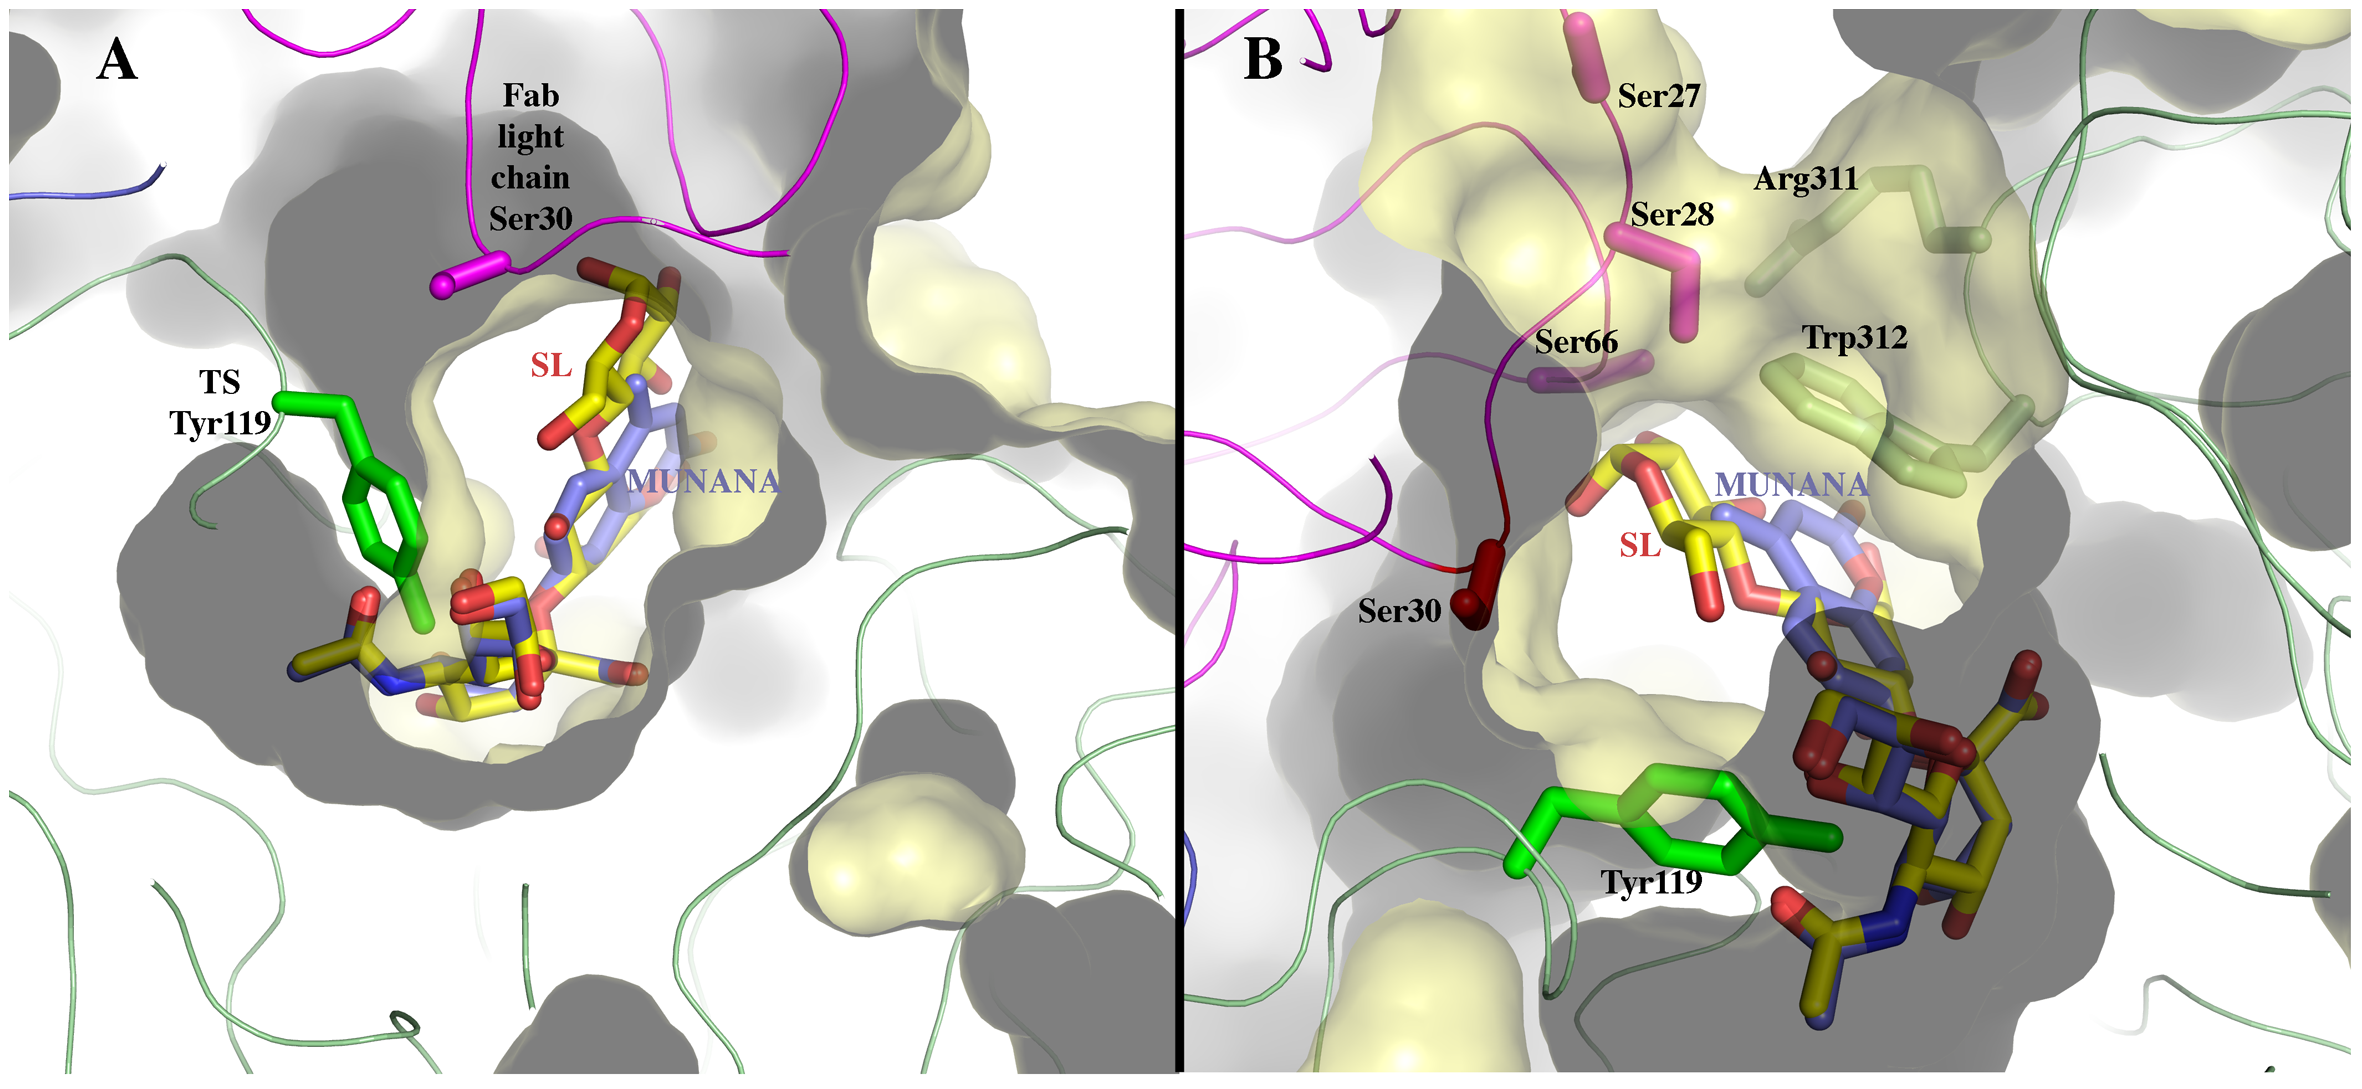 Sialoconjugate substrates modeled in the TS reaction center, in the context of the immunocomplex structure.